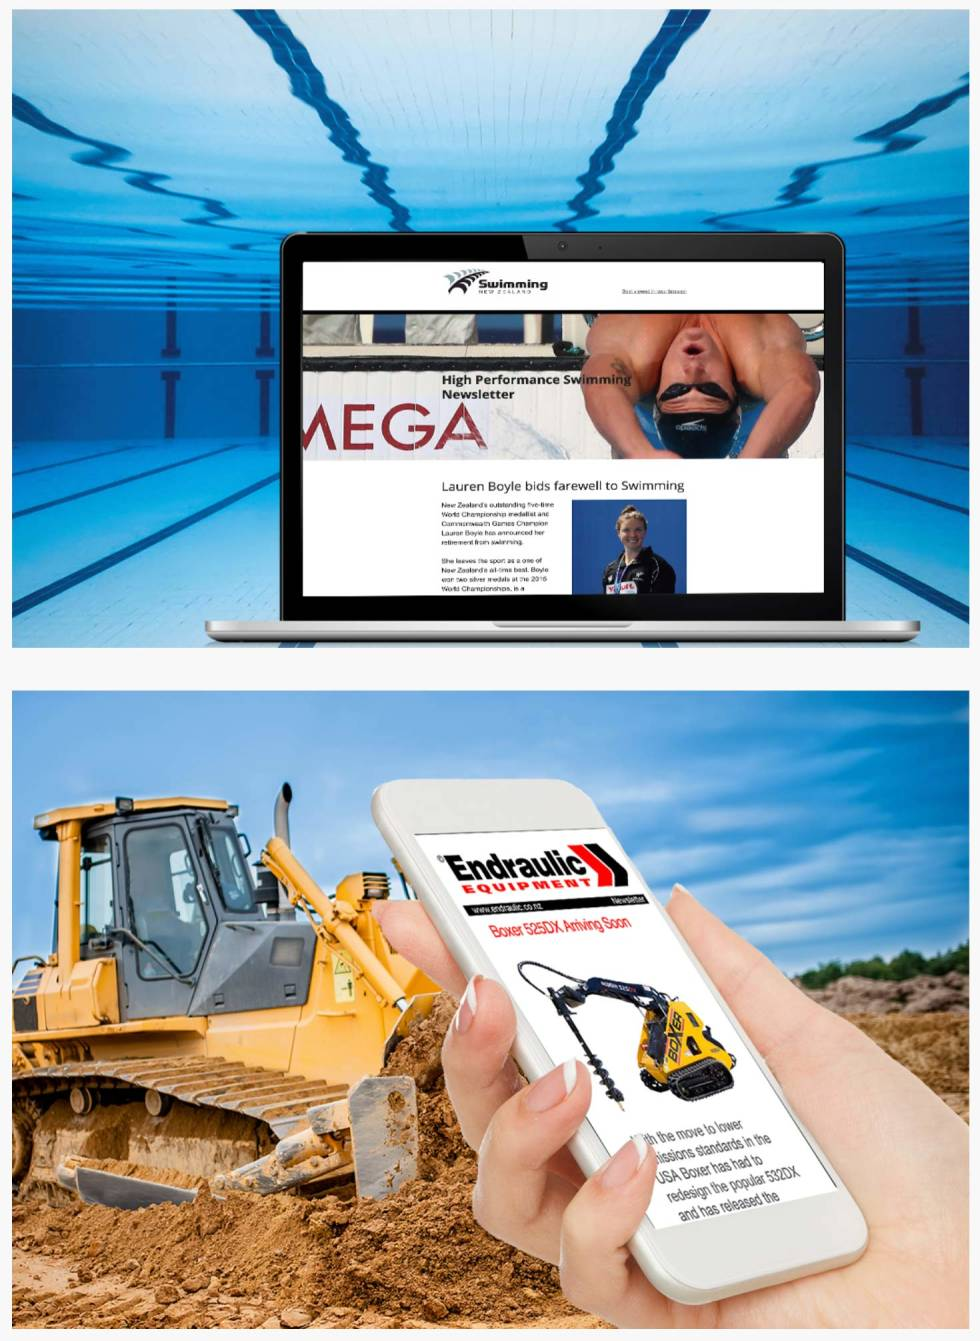 Image split in half horizontally. Top half features laptop against a swimming pool background. Laptop displays a swimming website. Under, phone is held against background of construction site. Phone displays images of construction equipment.